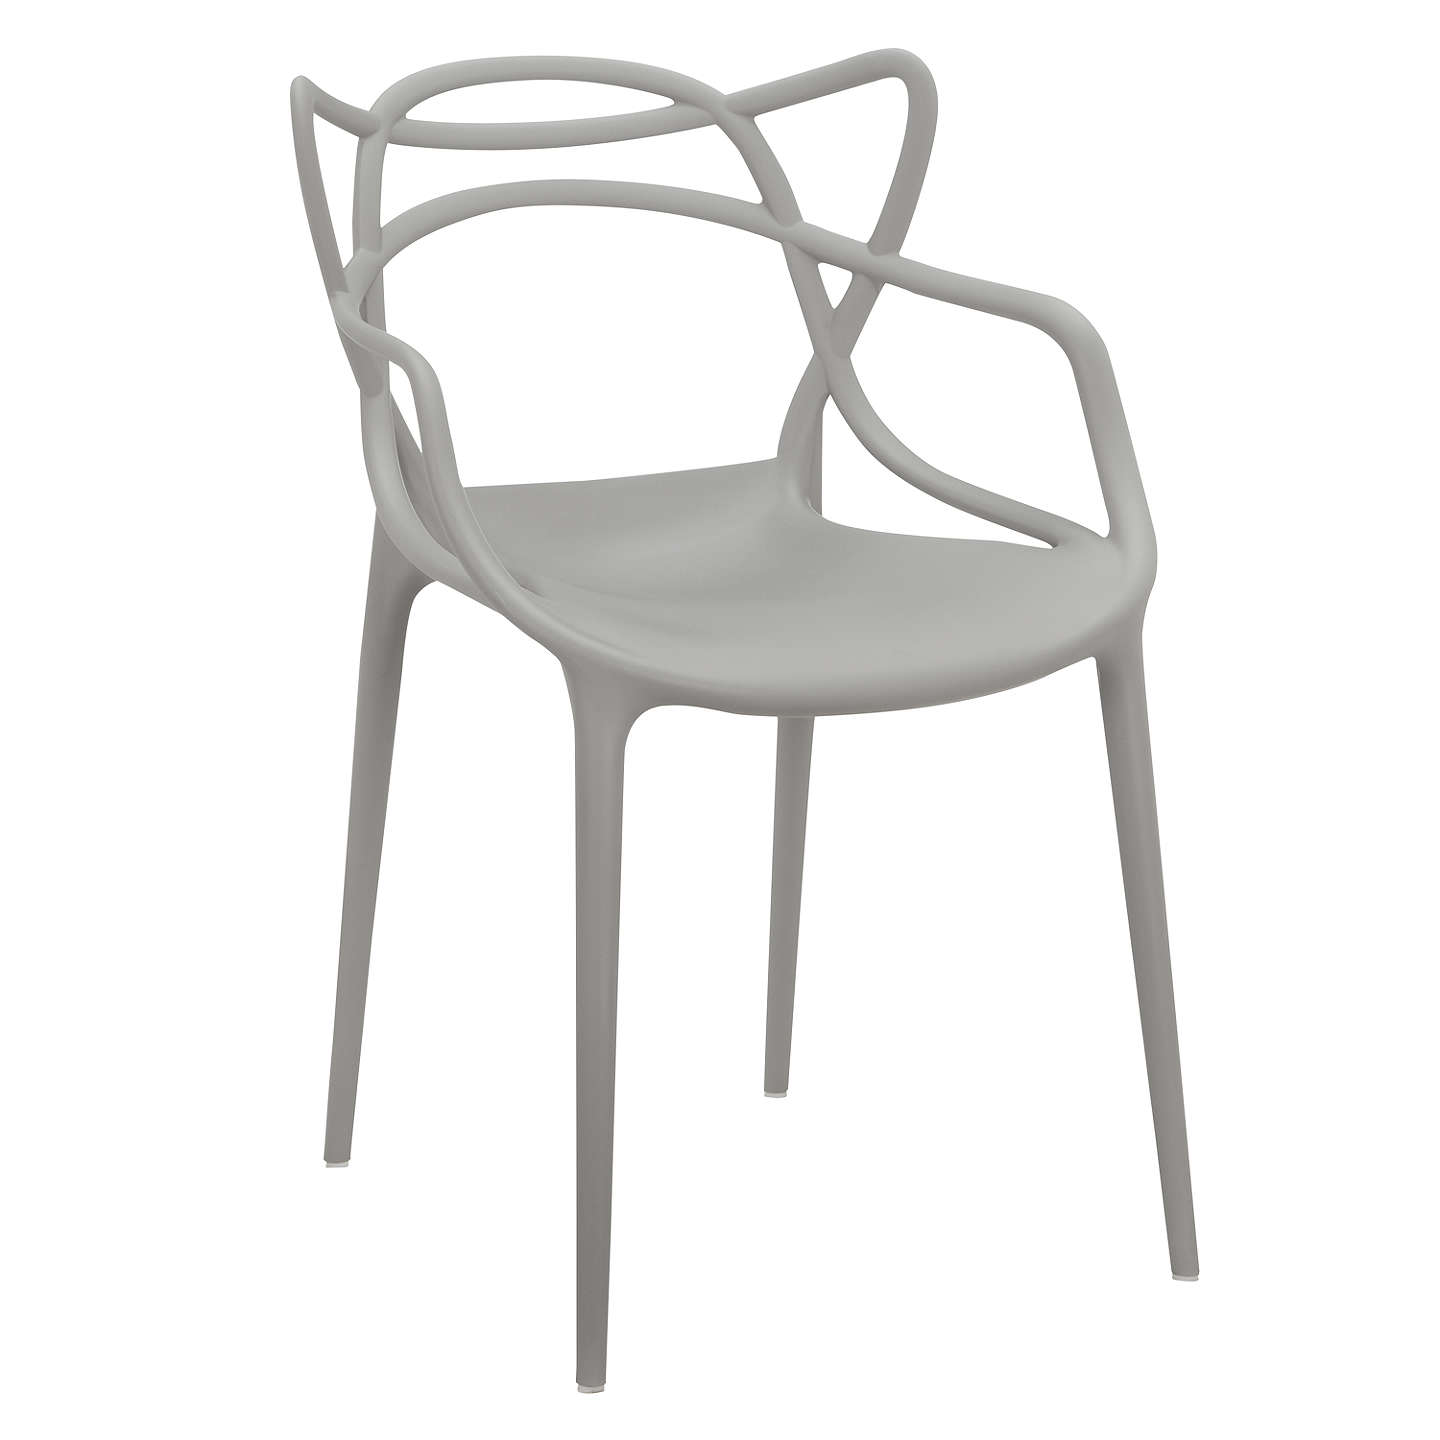 Kartell Garden Furniture Philippe starck for kartell masters chair at john lewis buyphilippe starck for kartell masters chair grey online at johnlewis workwithnaturefo